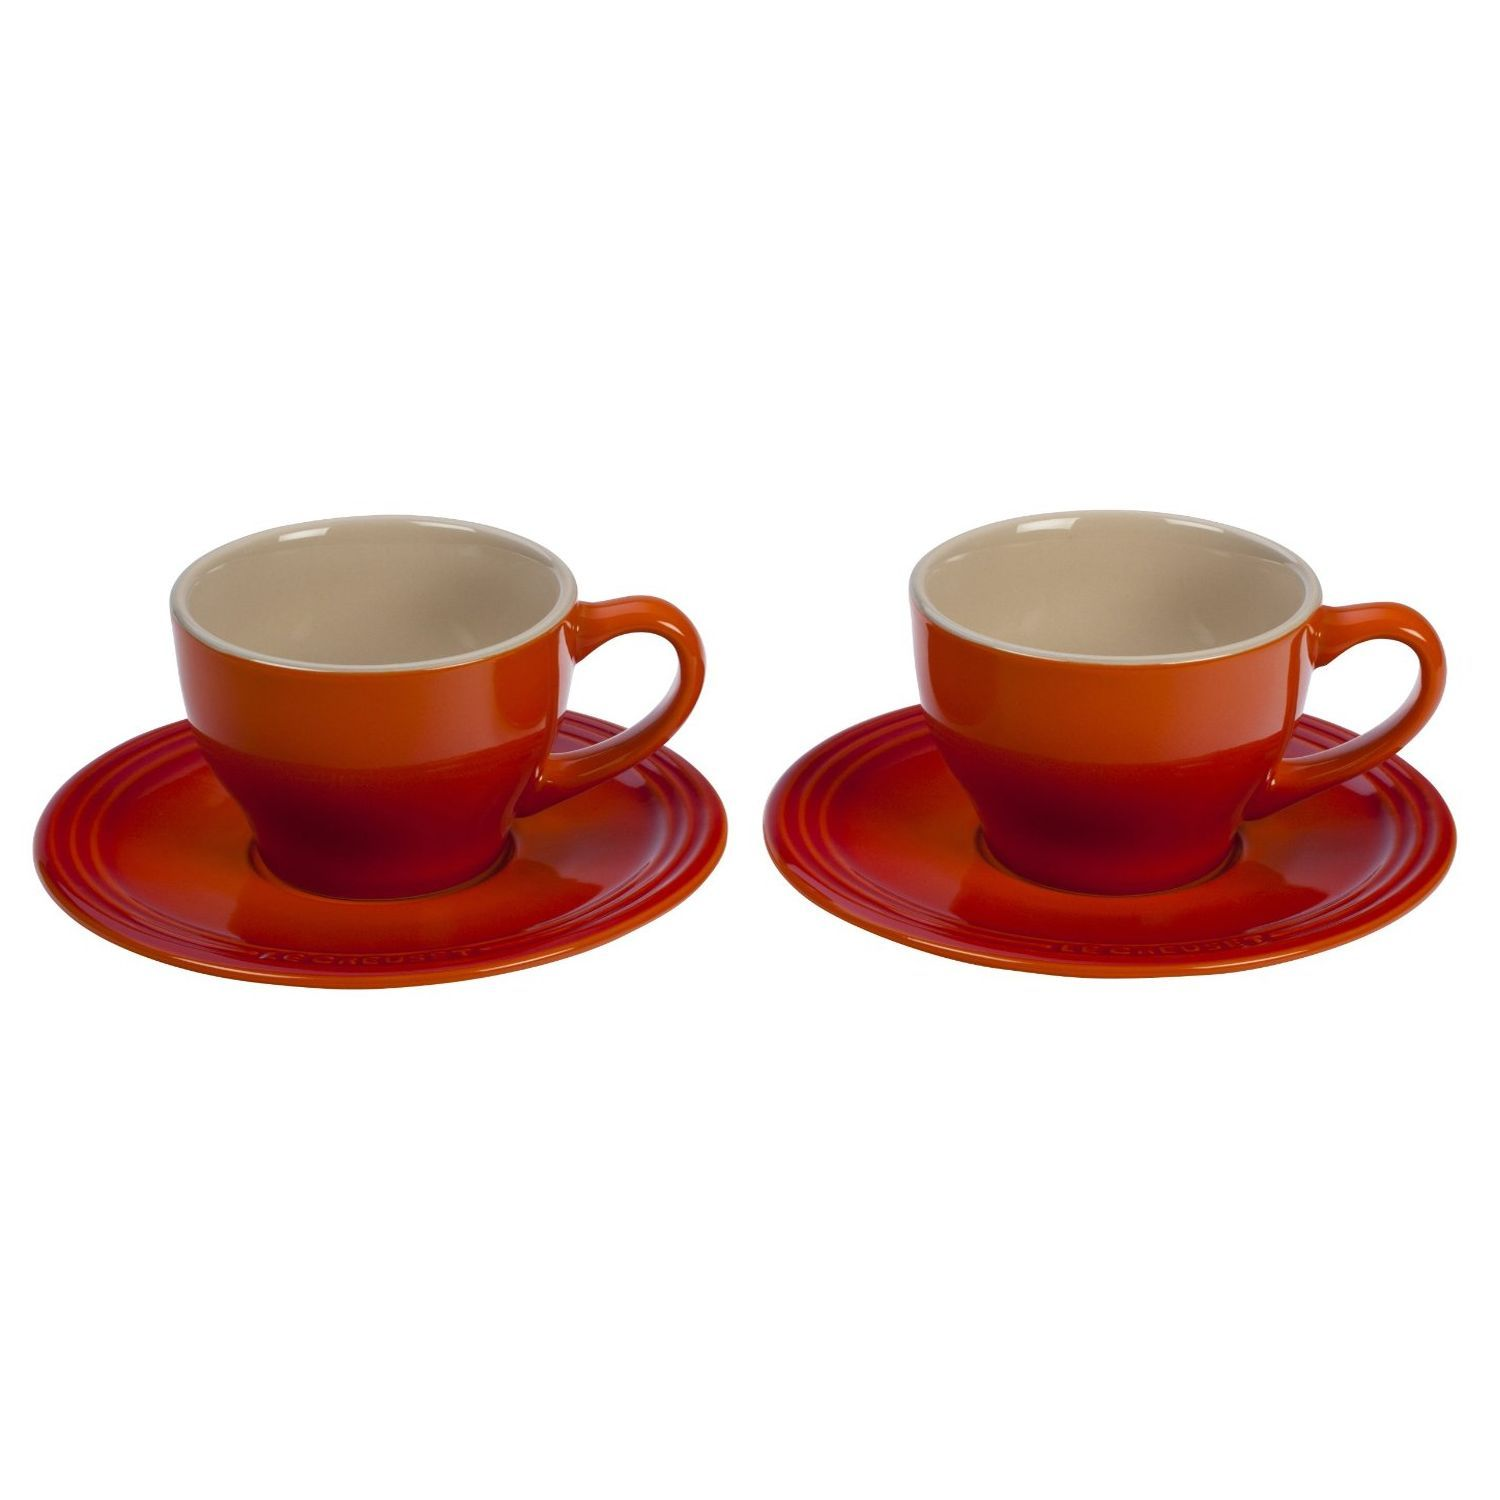 le creuset stoneware set of  cappuccino cups and saucers flame  - le creuset stoneware set of  cappuccino cups and saucers flame